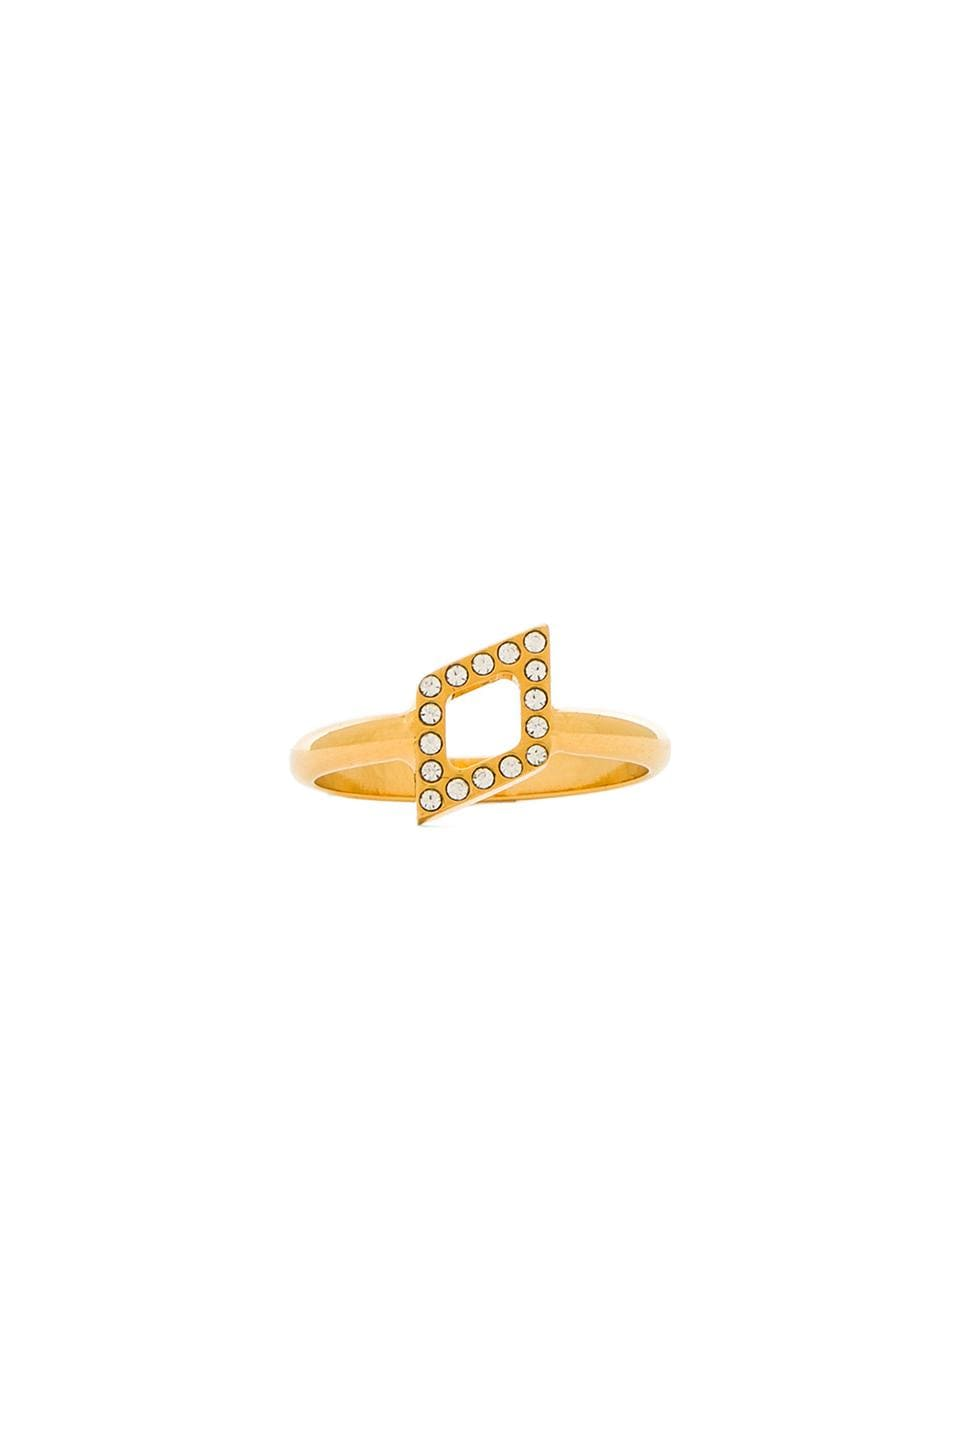 Vita Fede Rombo Crystal Ring in Gold